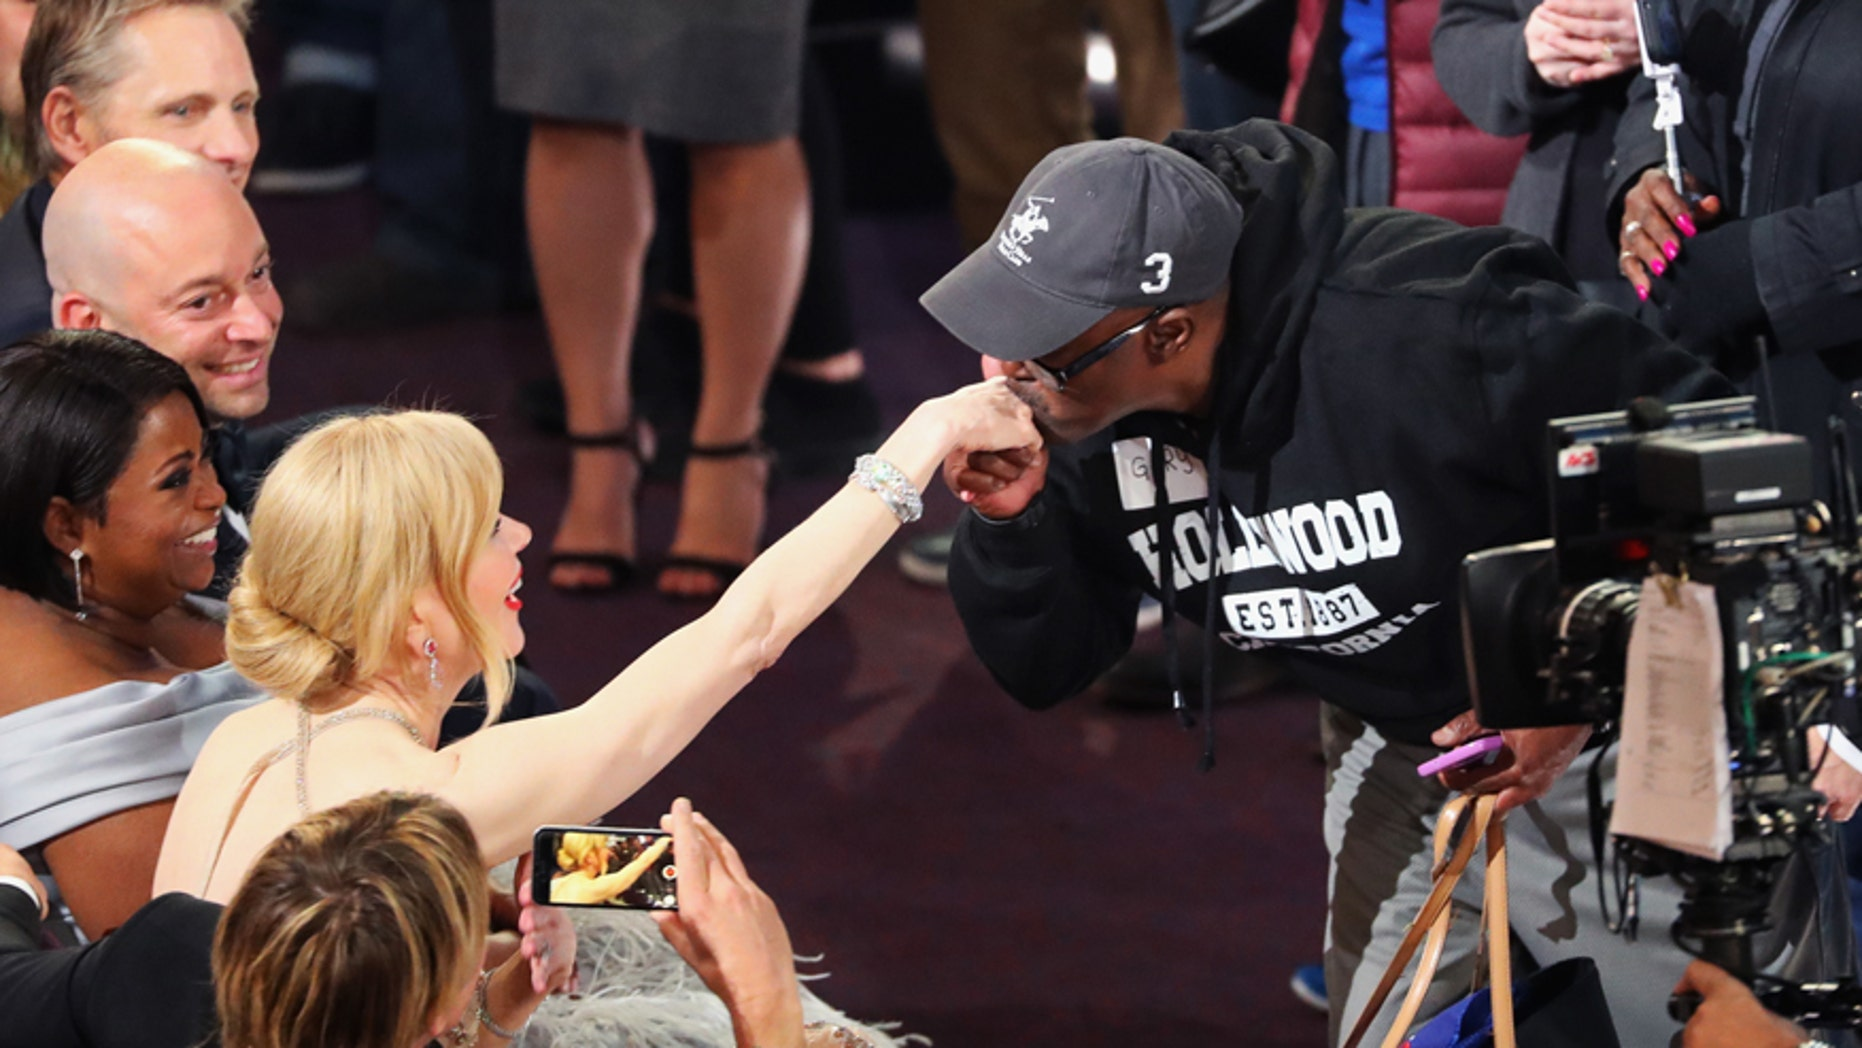 """""""Gary from Chicago"""" kisses the hand of actor Nicole Kidman during a skit at the 89th Annual Academy Awards."""